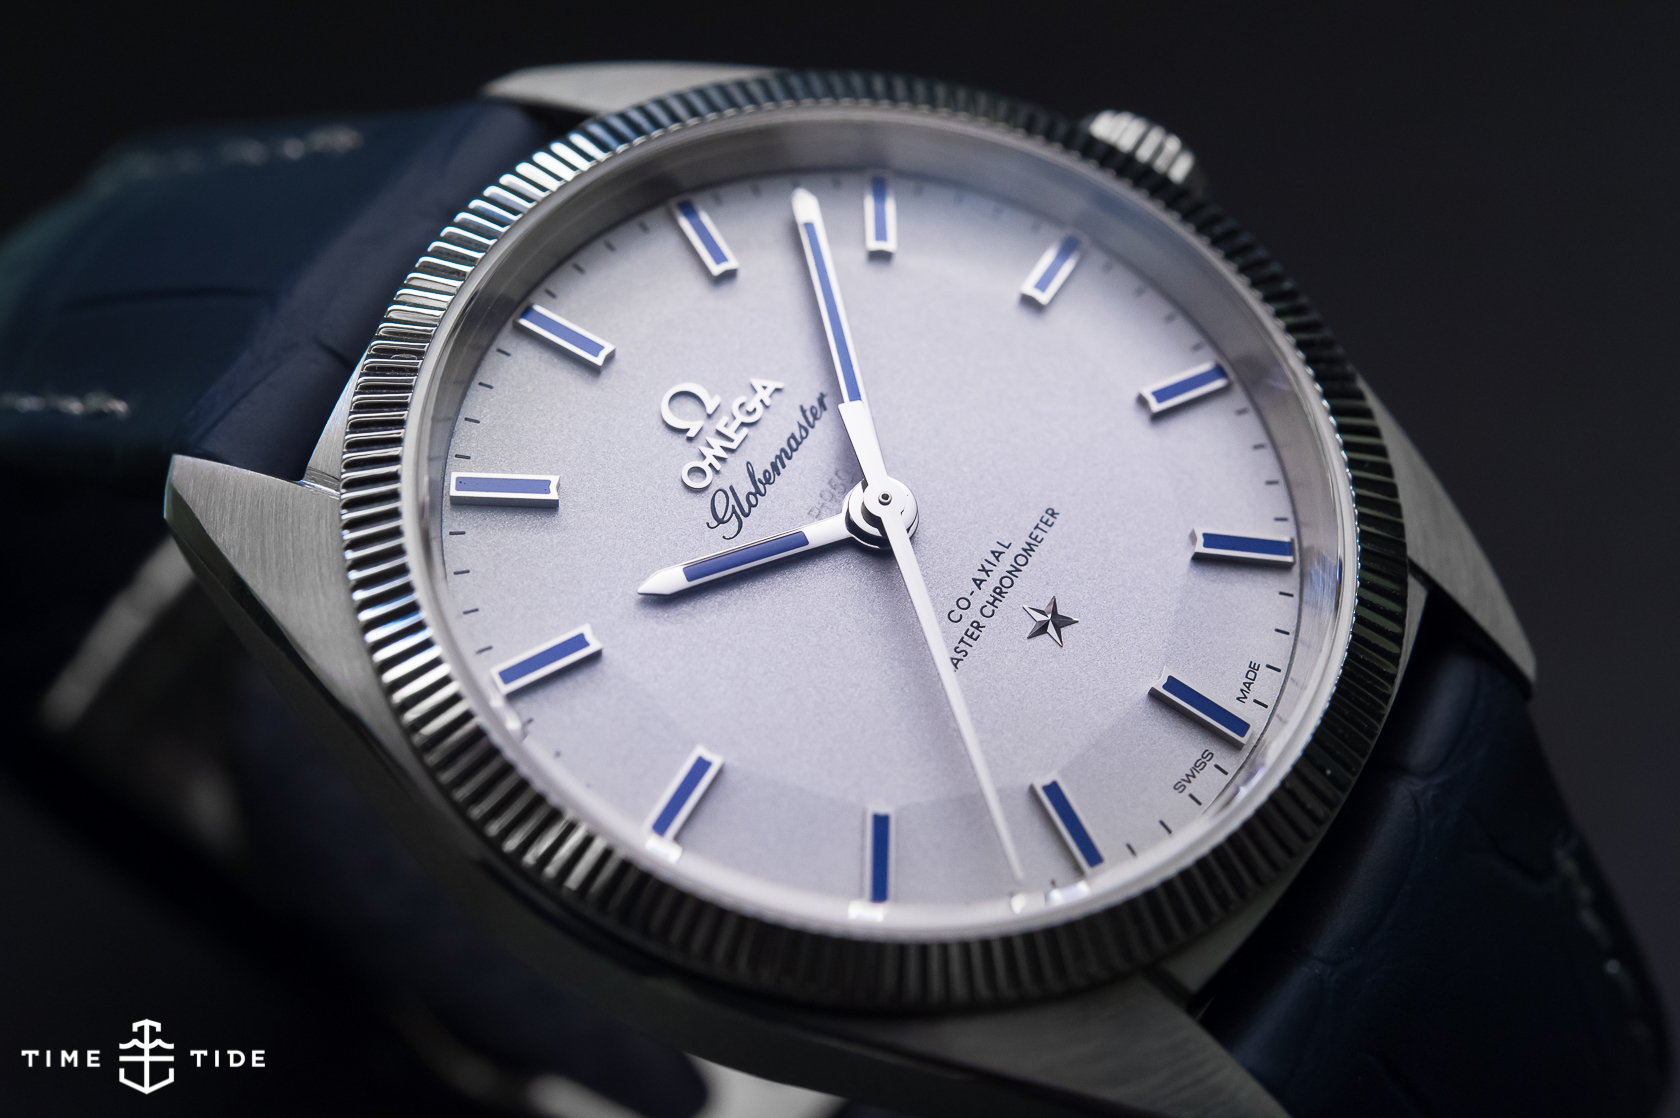 Omega Globemaster Hands On Review